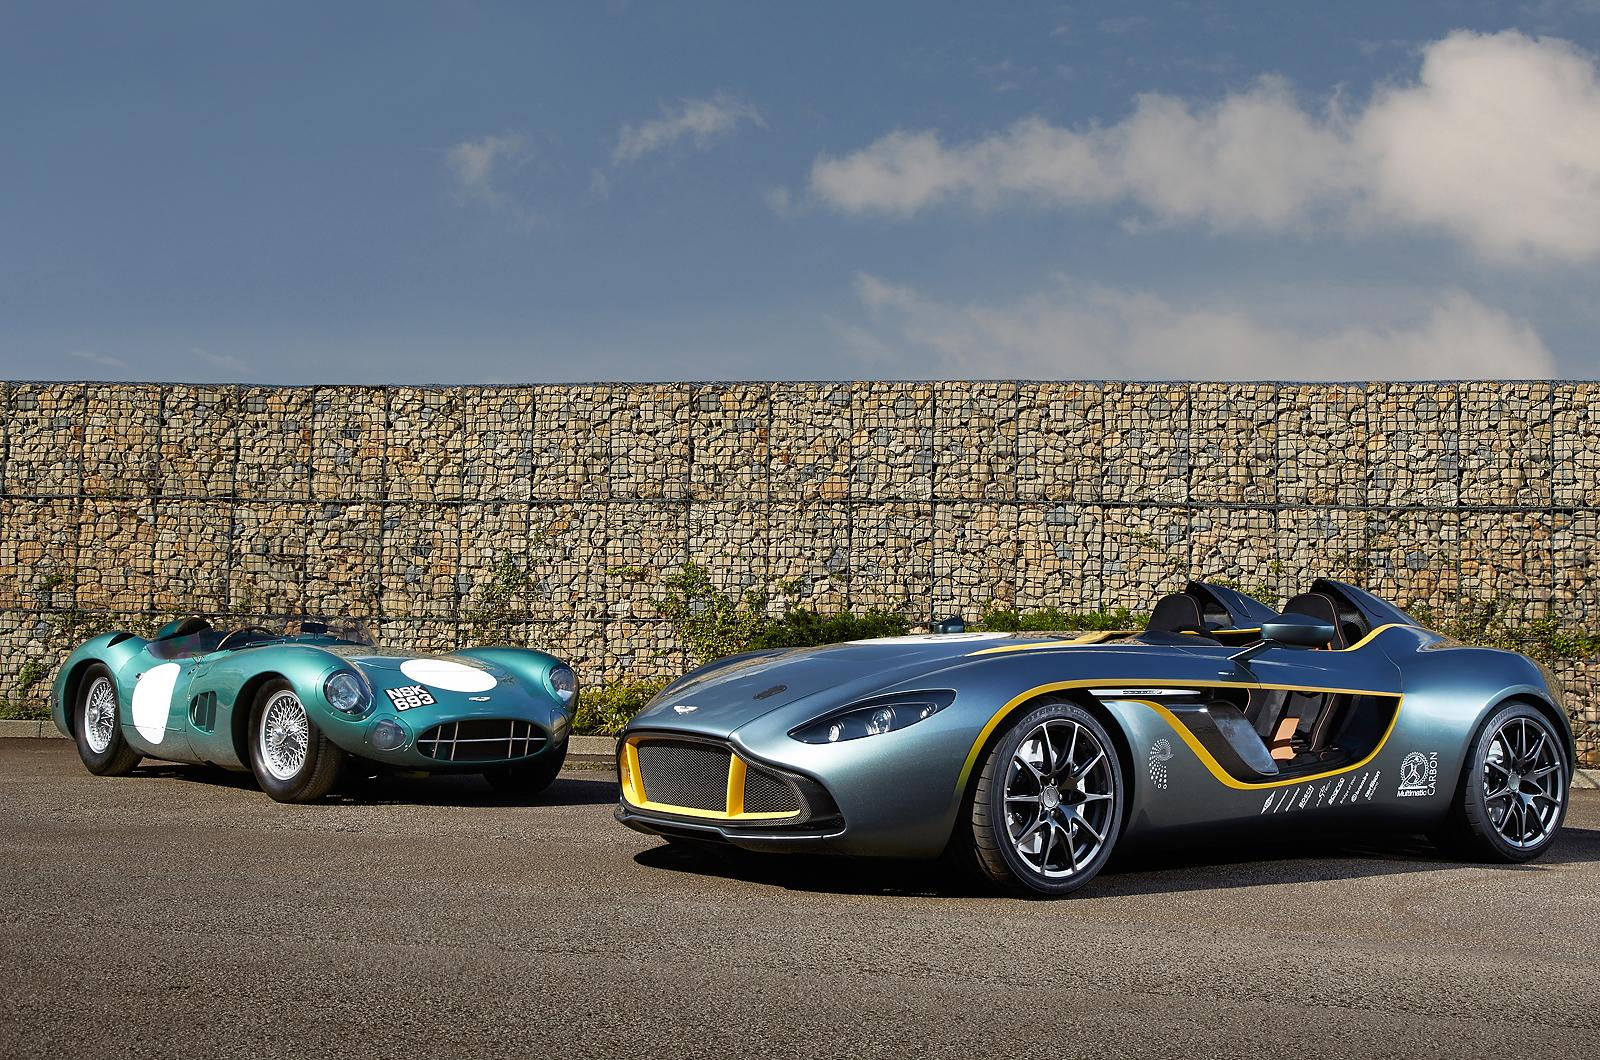 Aston Martin CC100 Speedster Concept  and 1959 DBR1